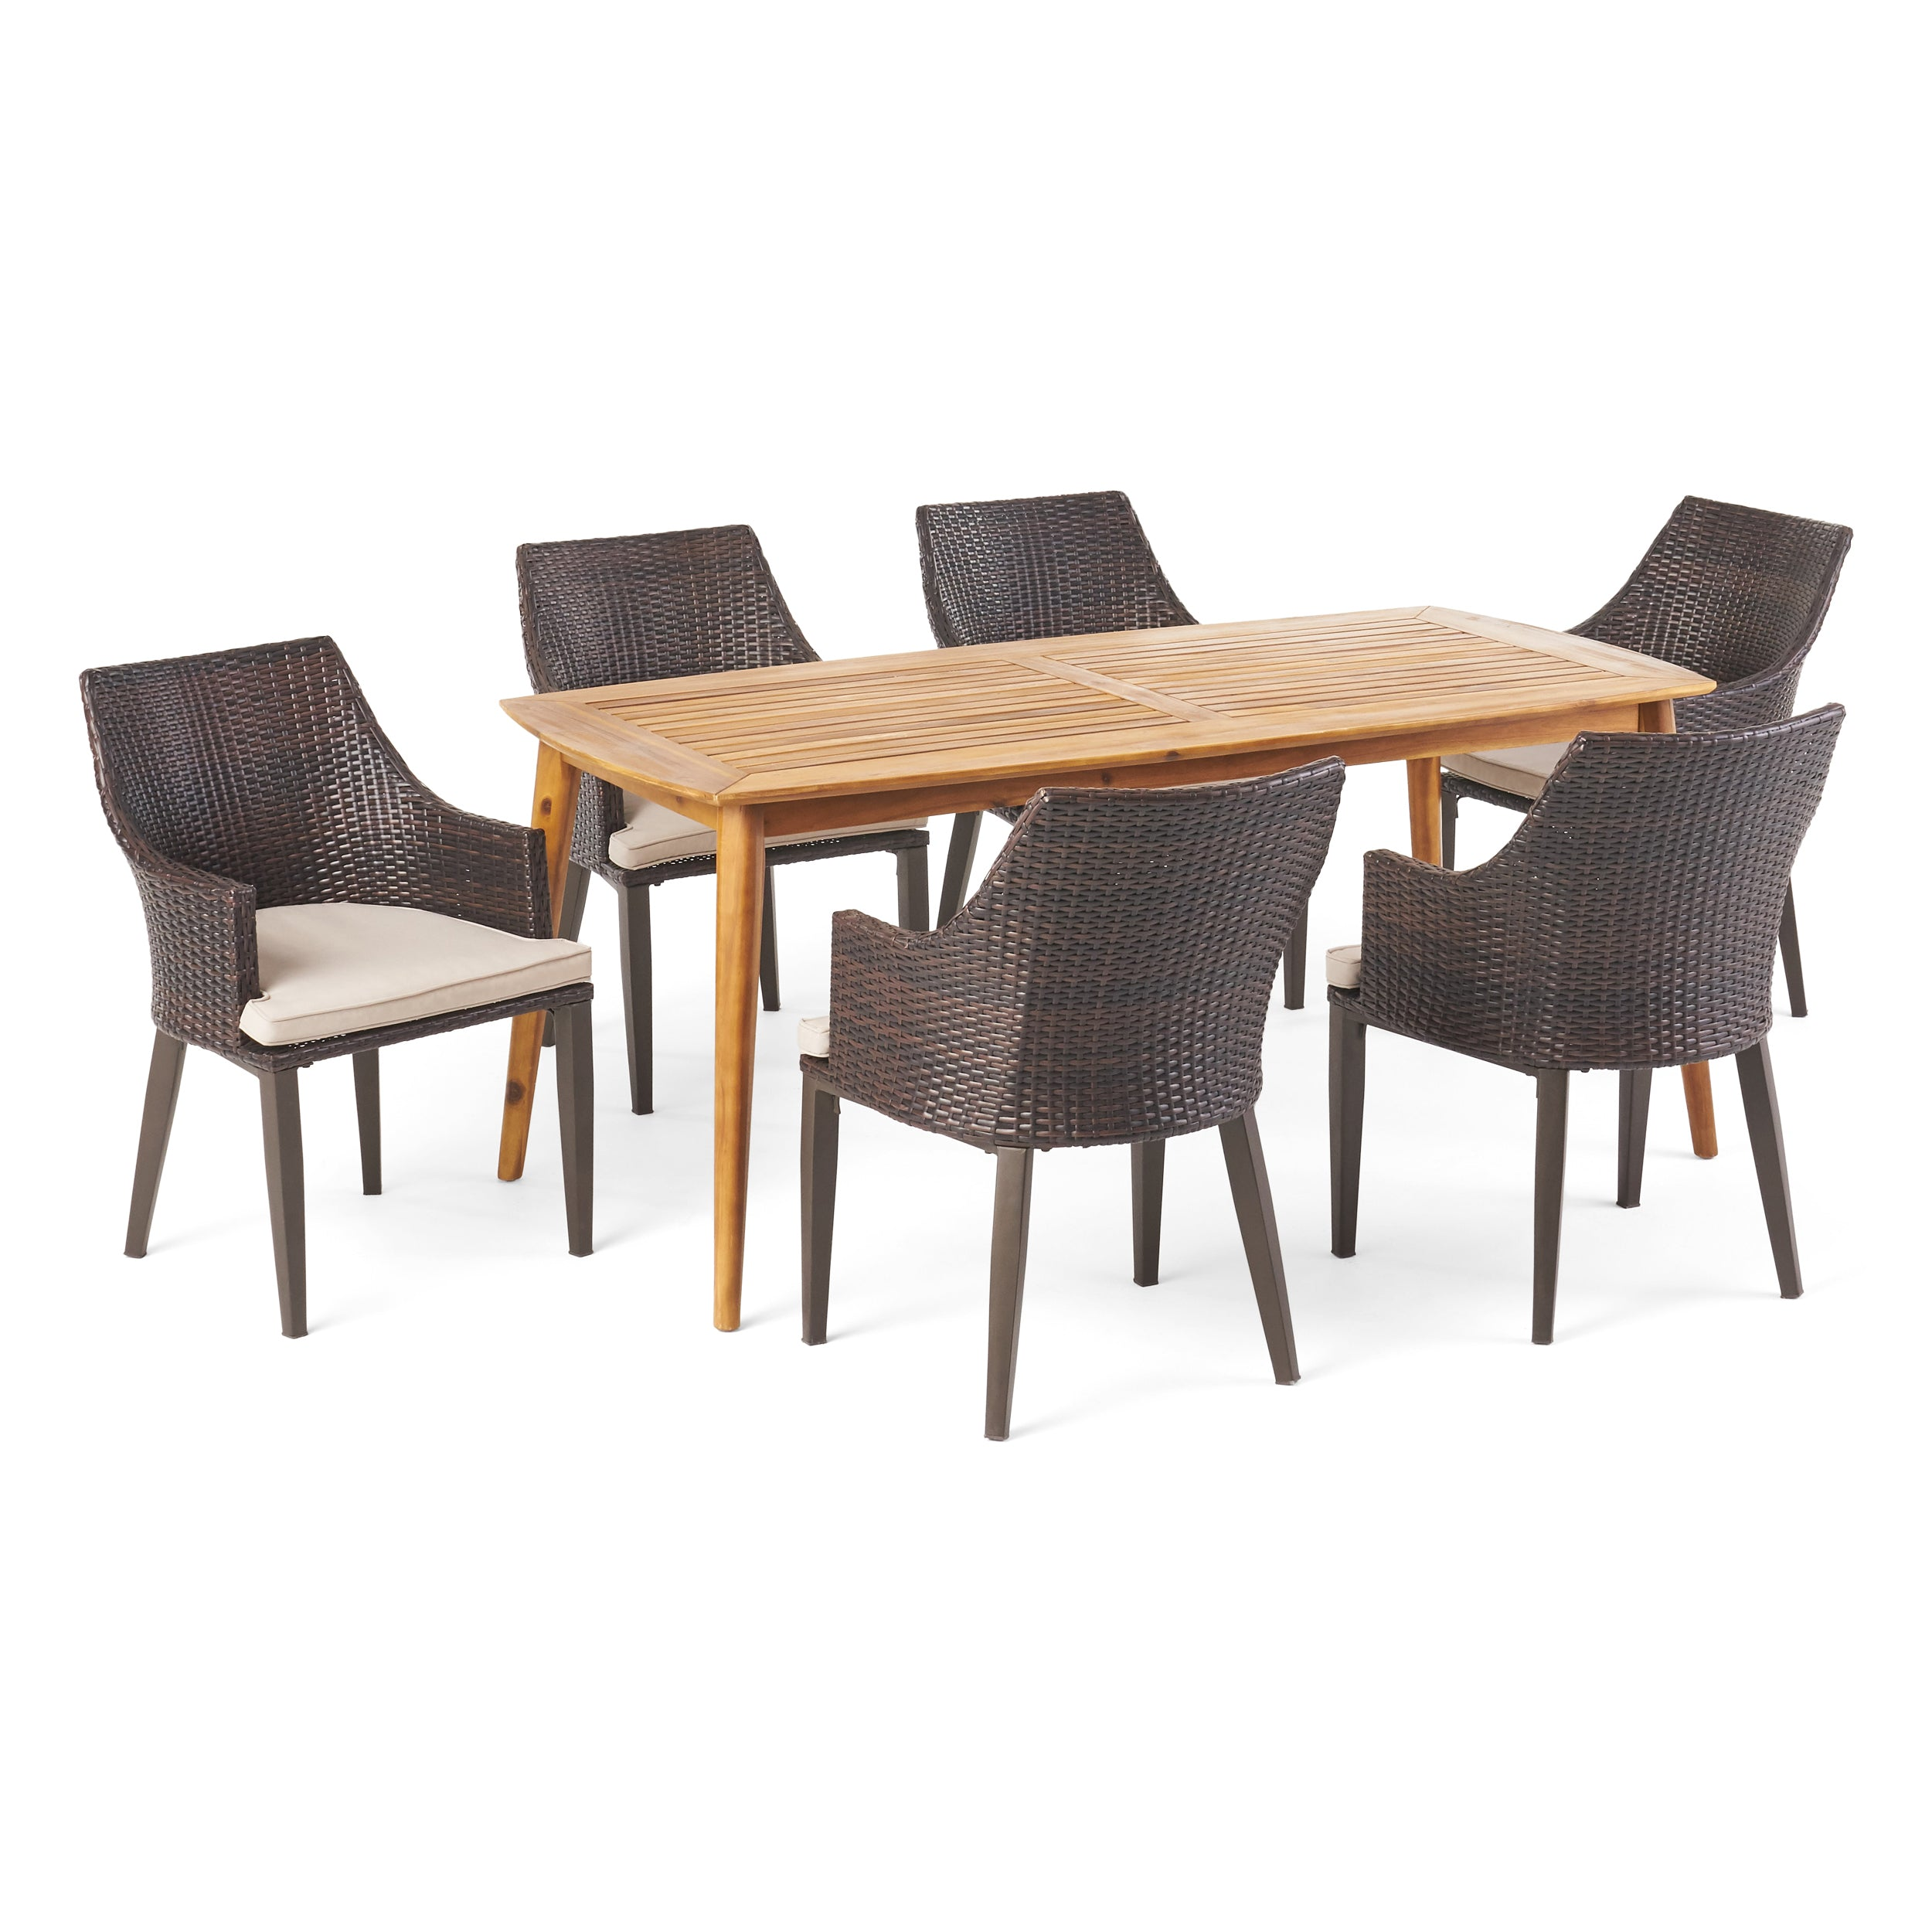 Allentown Outdoor 7 Piece Multi brown Wicker Dining Set with Acacia Wood Table Default Title